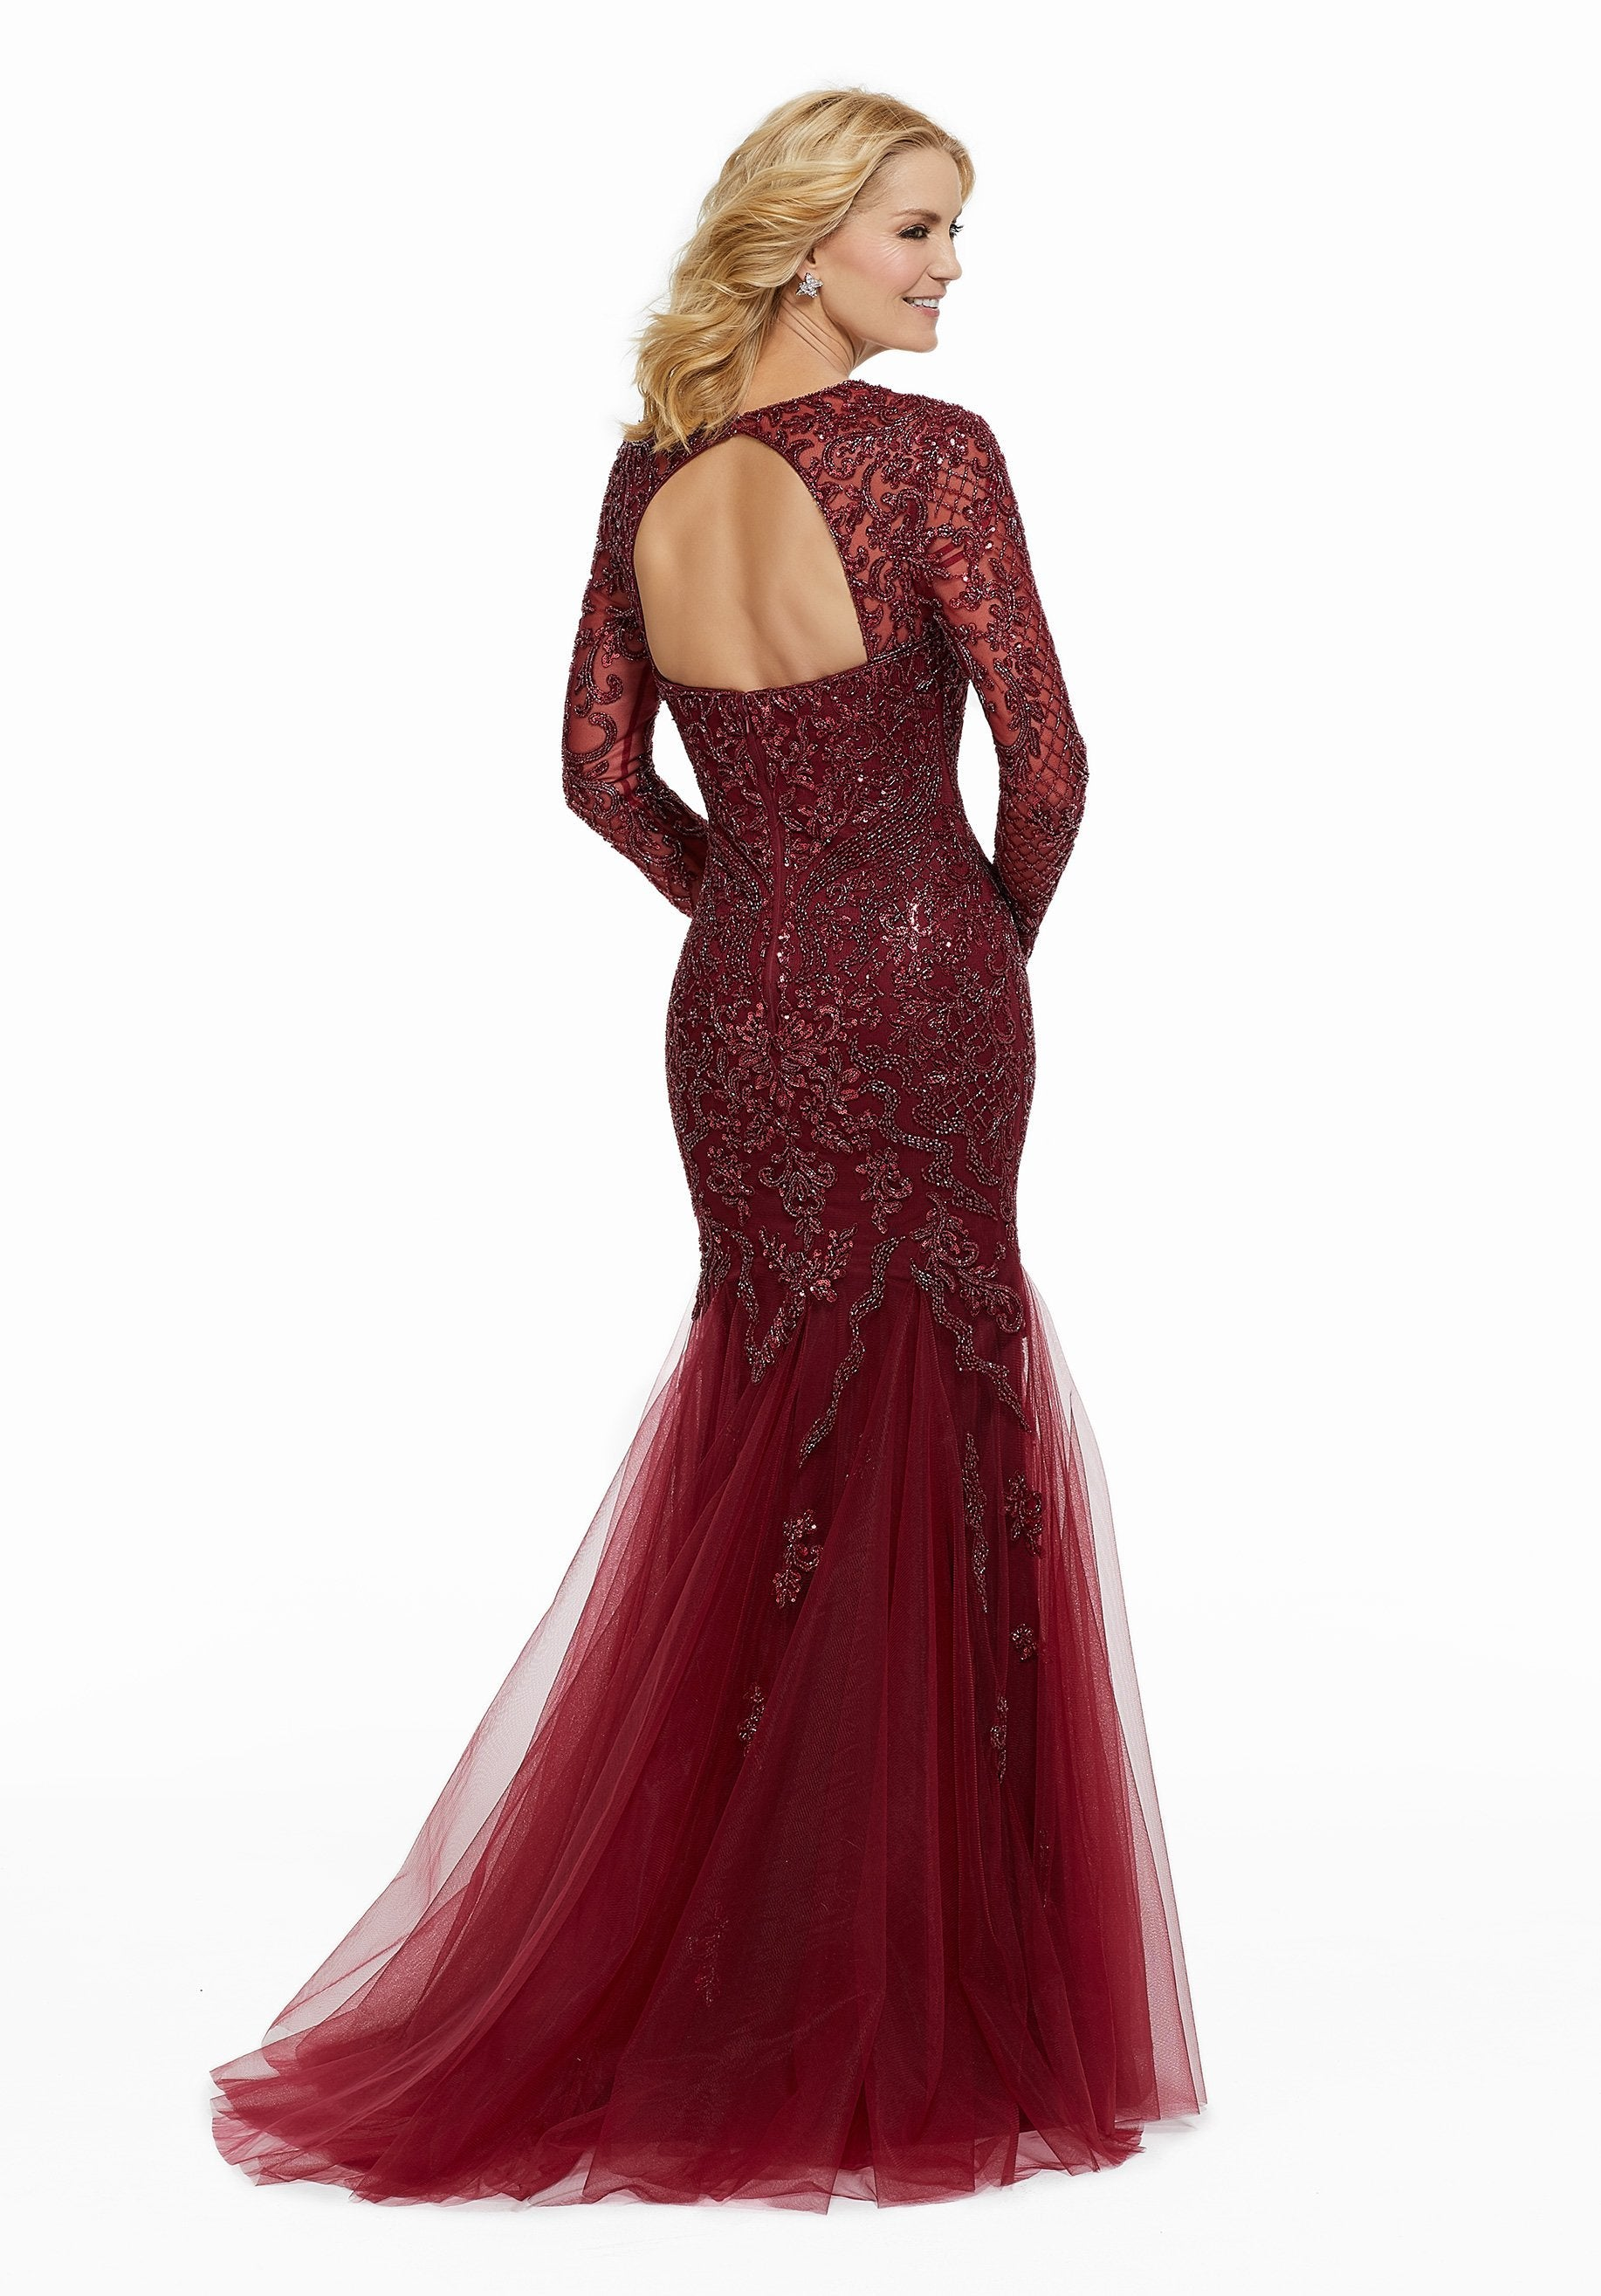 MGNY By Mori Lee - Beaded Sweetheart Long Sleeve Trumpet Gown 72036 In Red